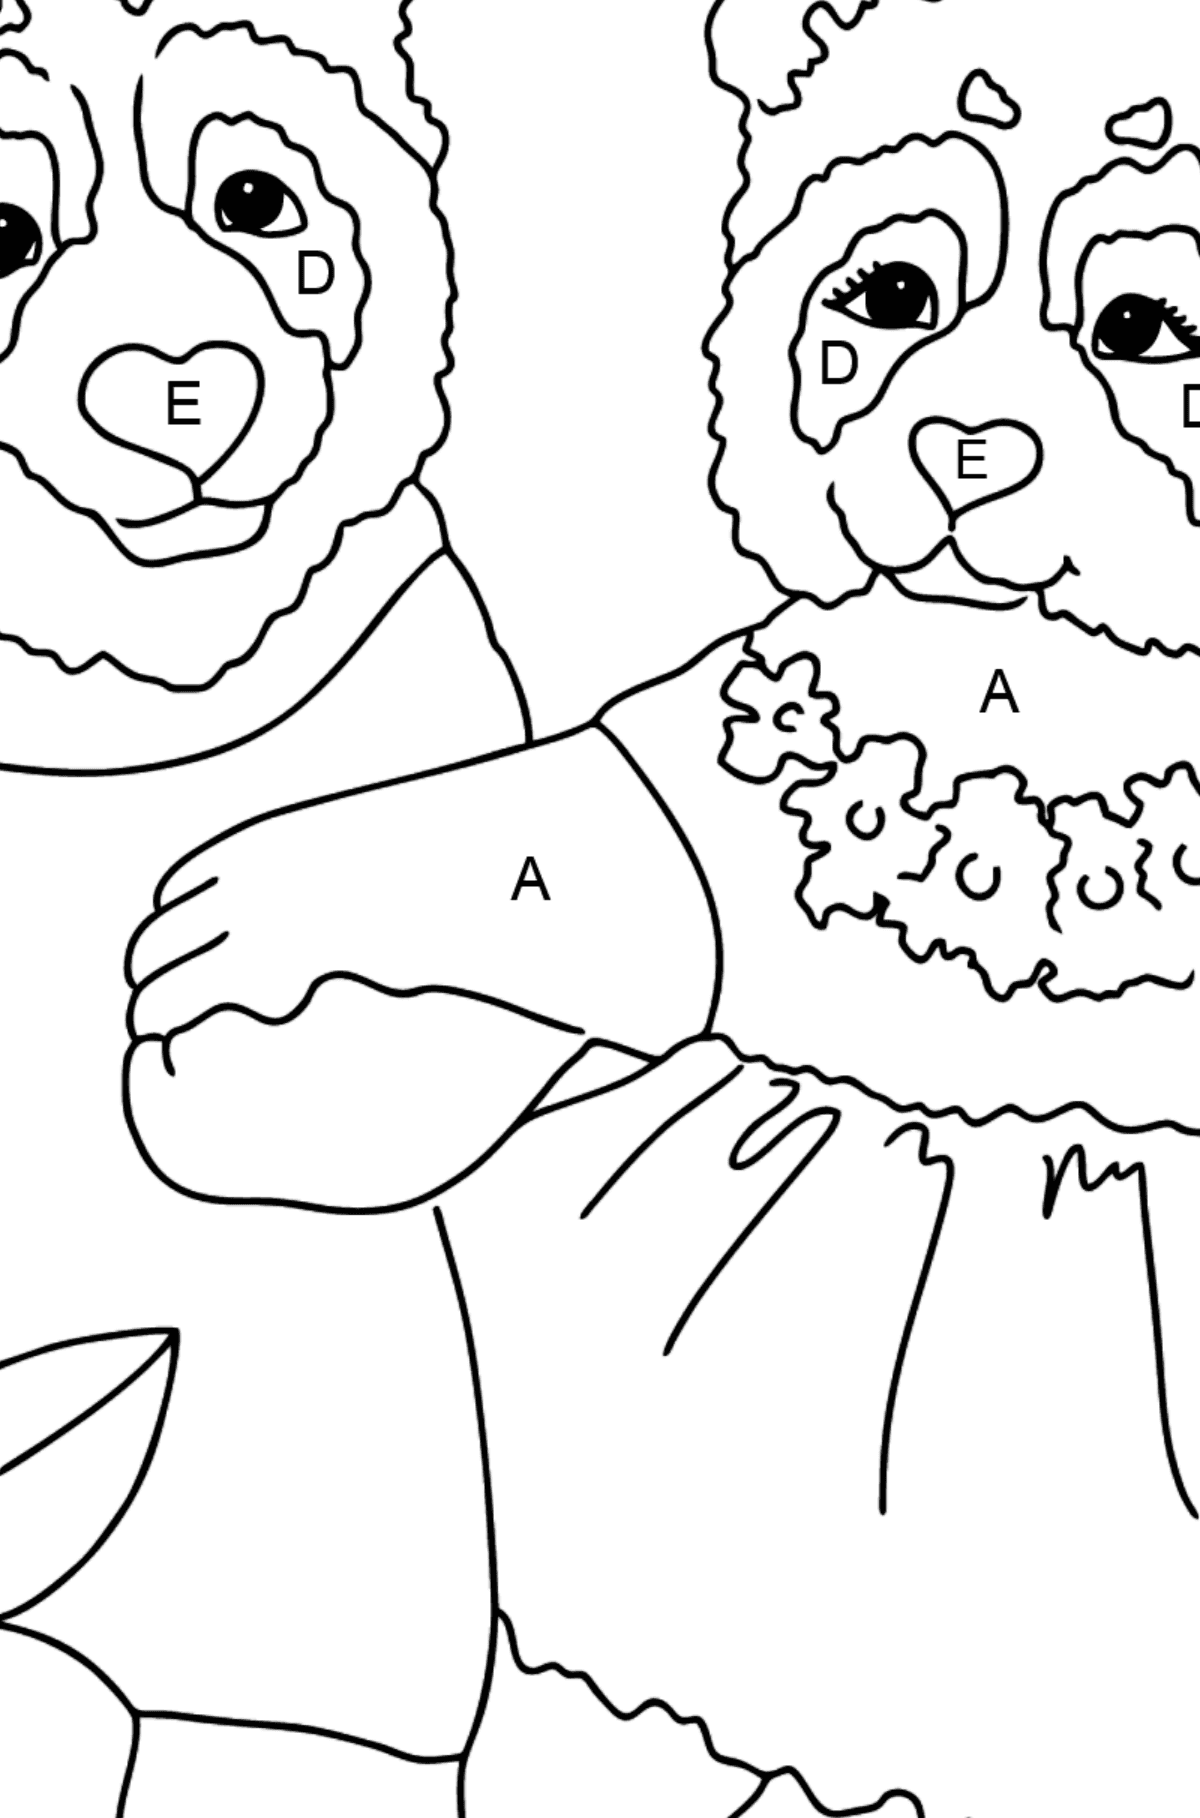 Coloring Page - Pandas Taking a Walk - Coloring by Letters for Kids